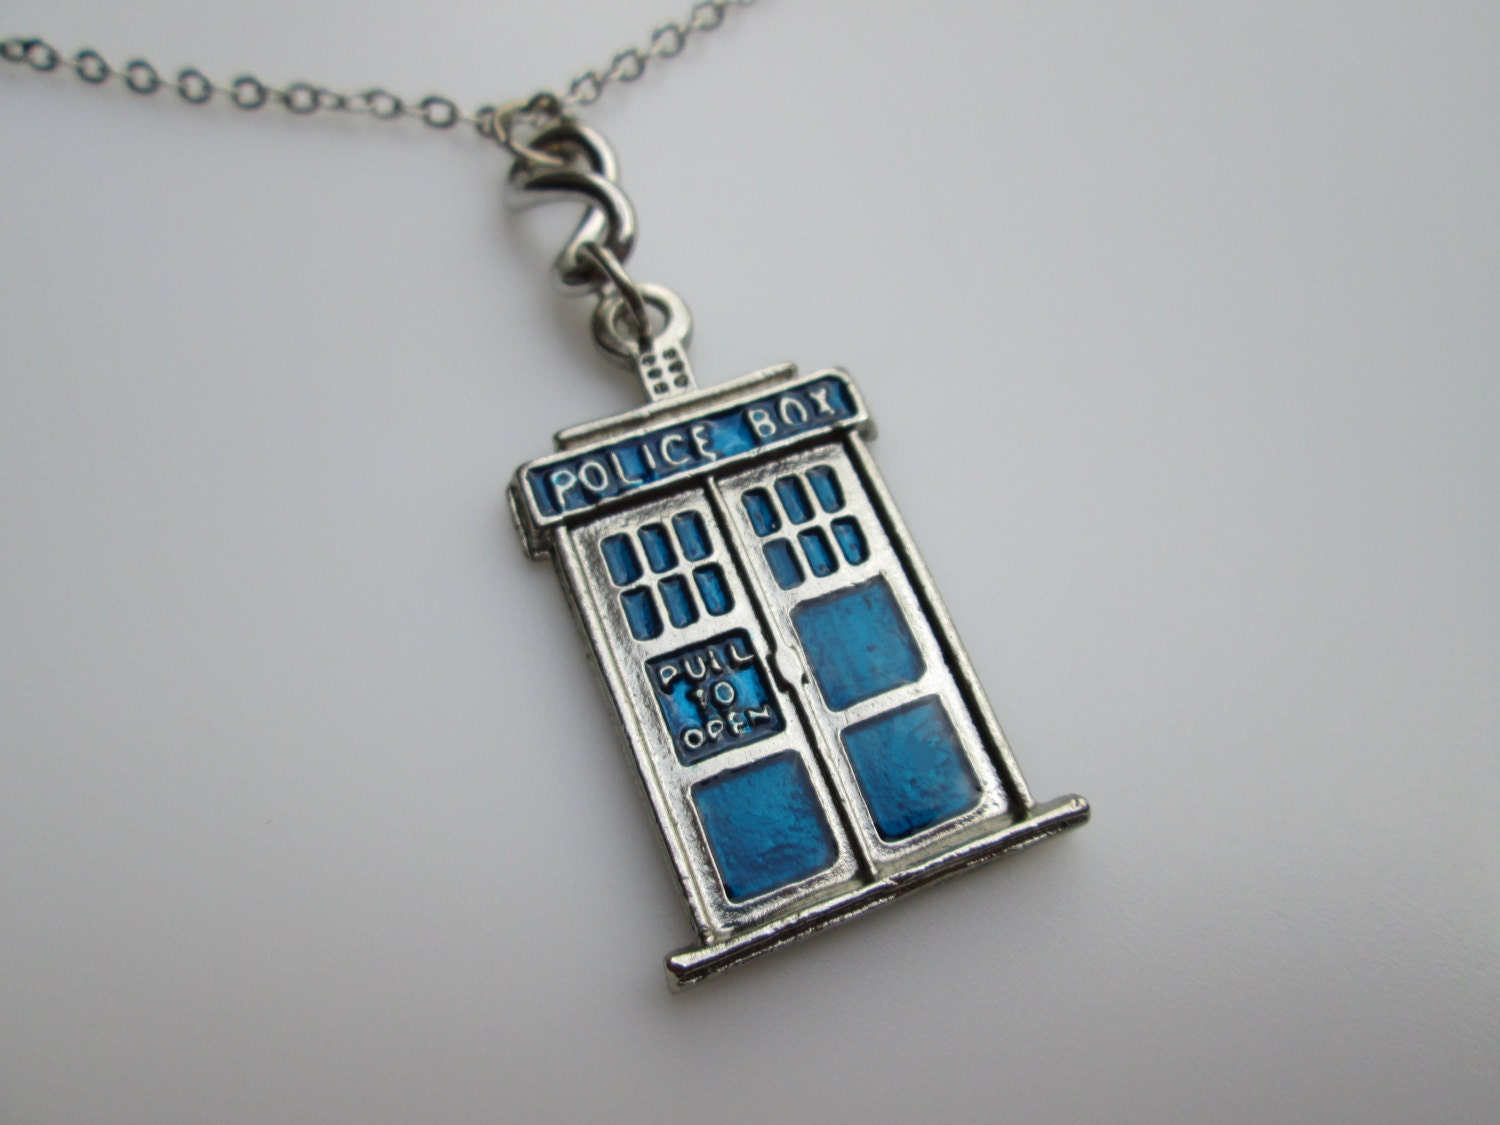 tardis necklace doctor who necklace inspired by doctor who